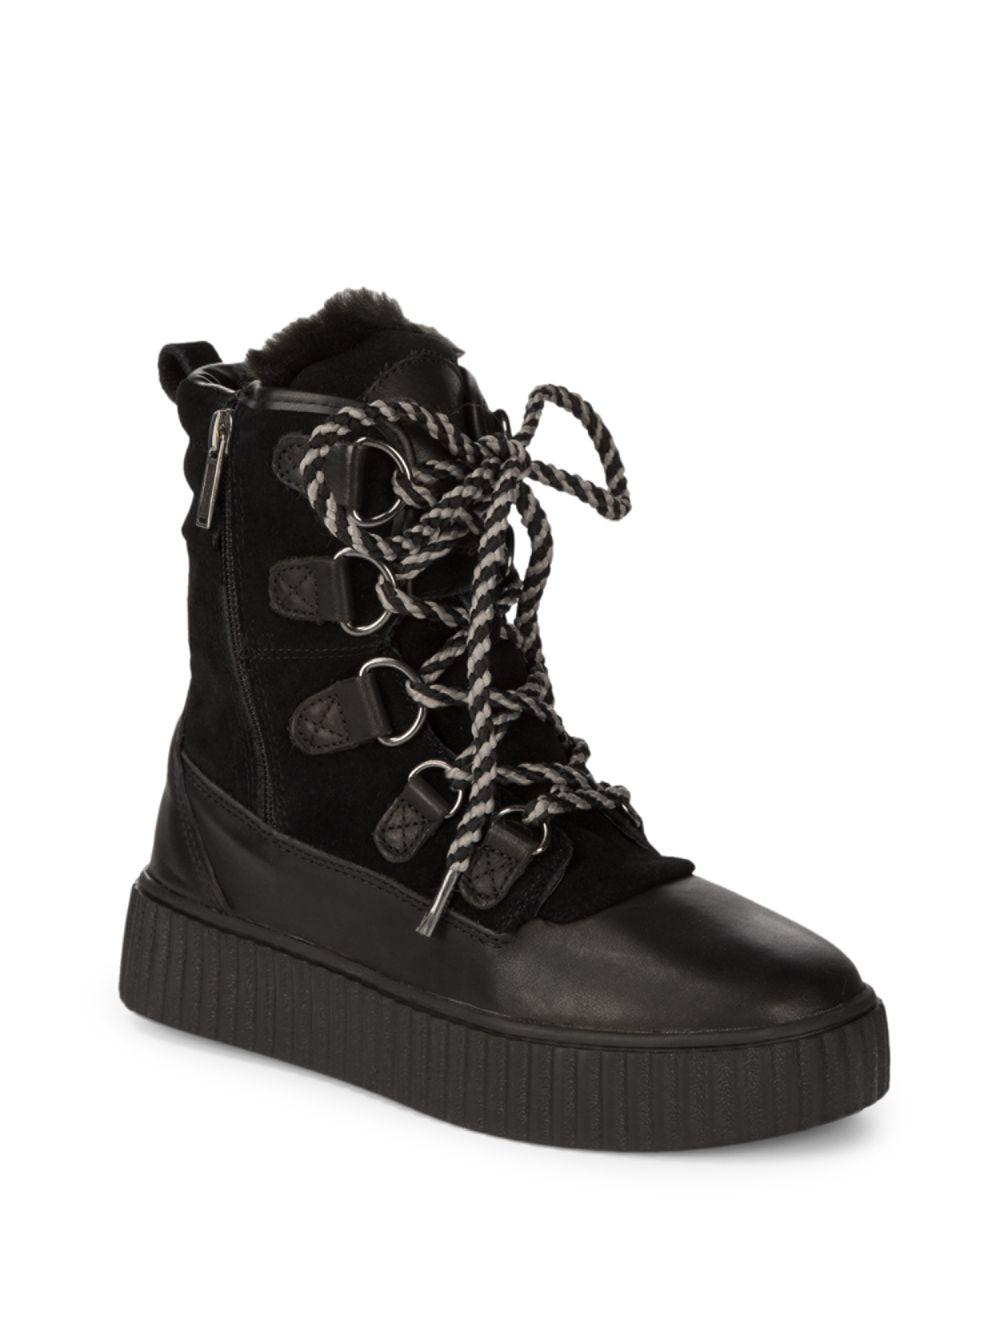 Pajar. Women's Black Leather Lace-up Boots